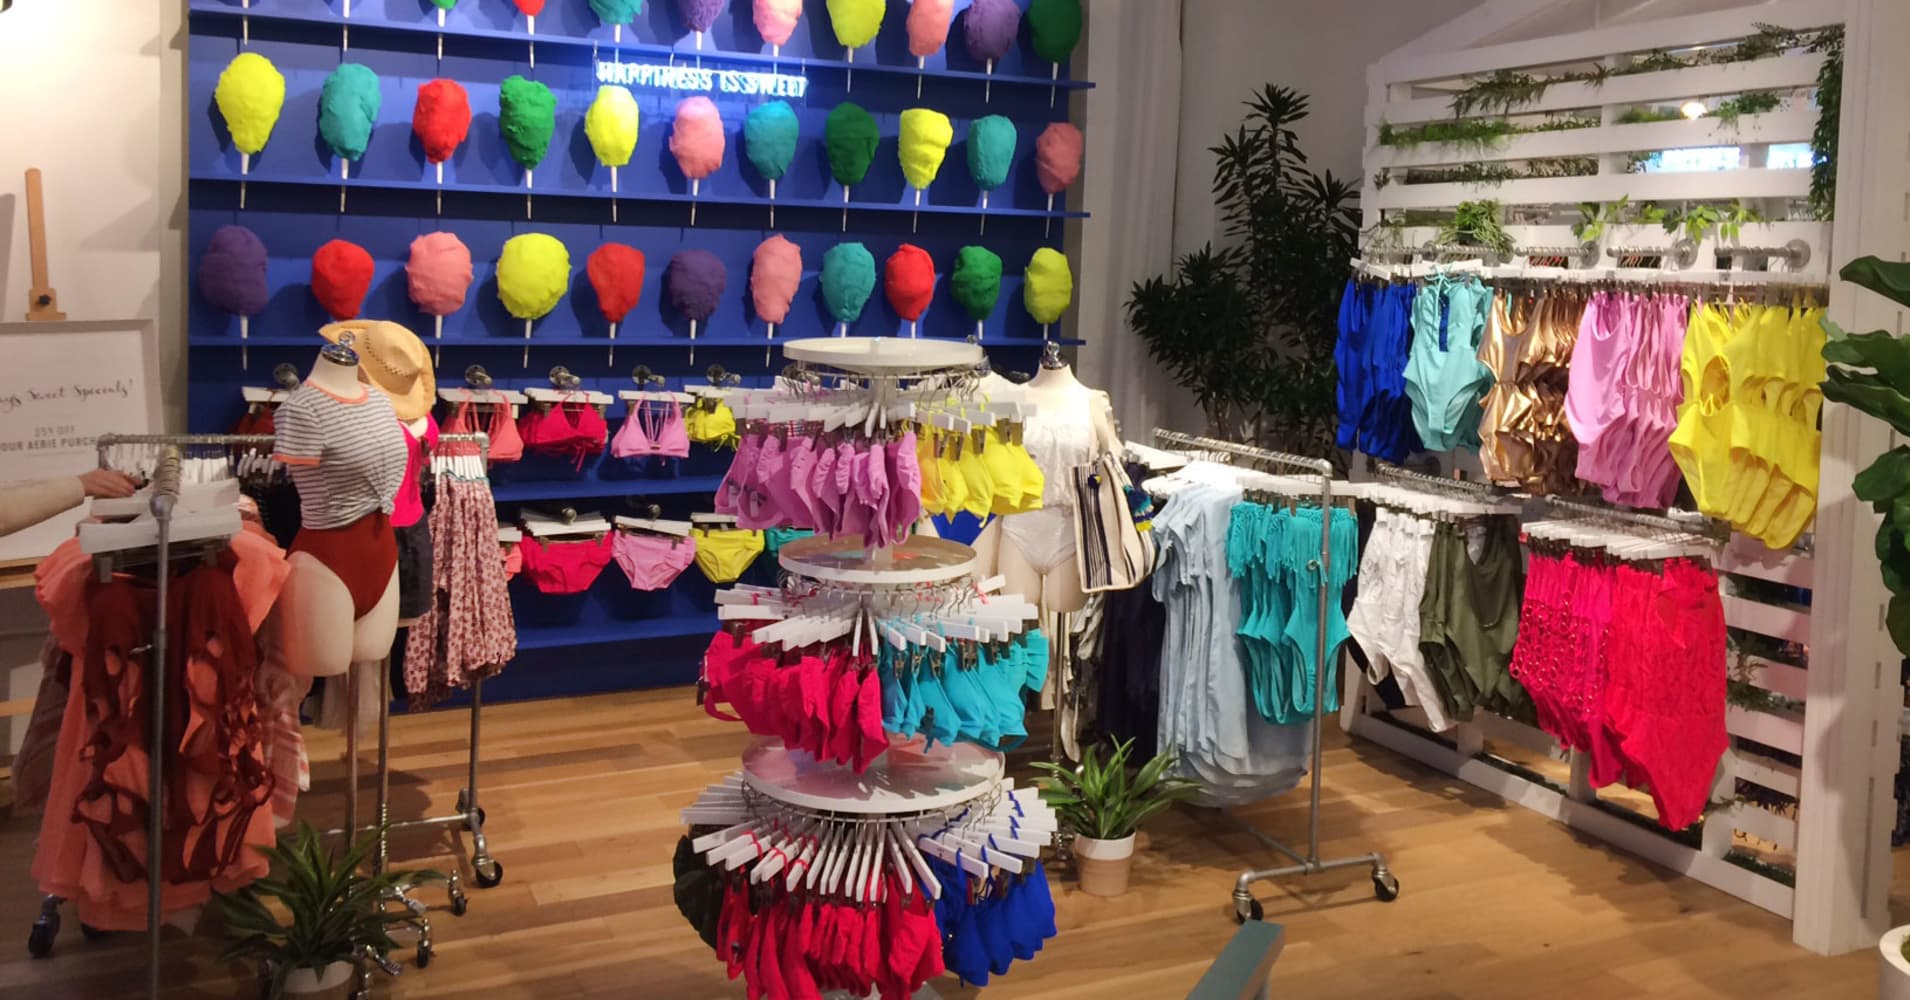 This teen retailer is thriving while its competitors flounder